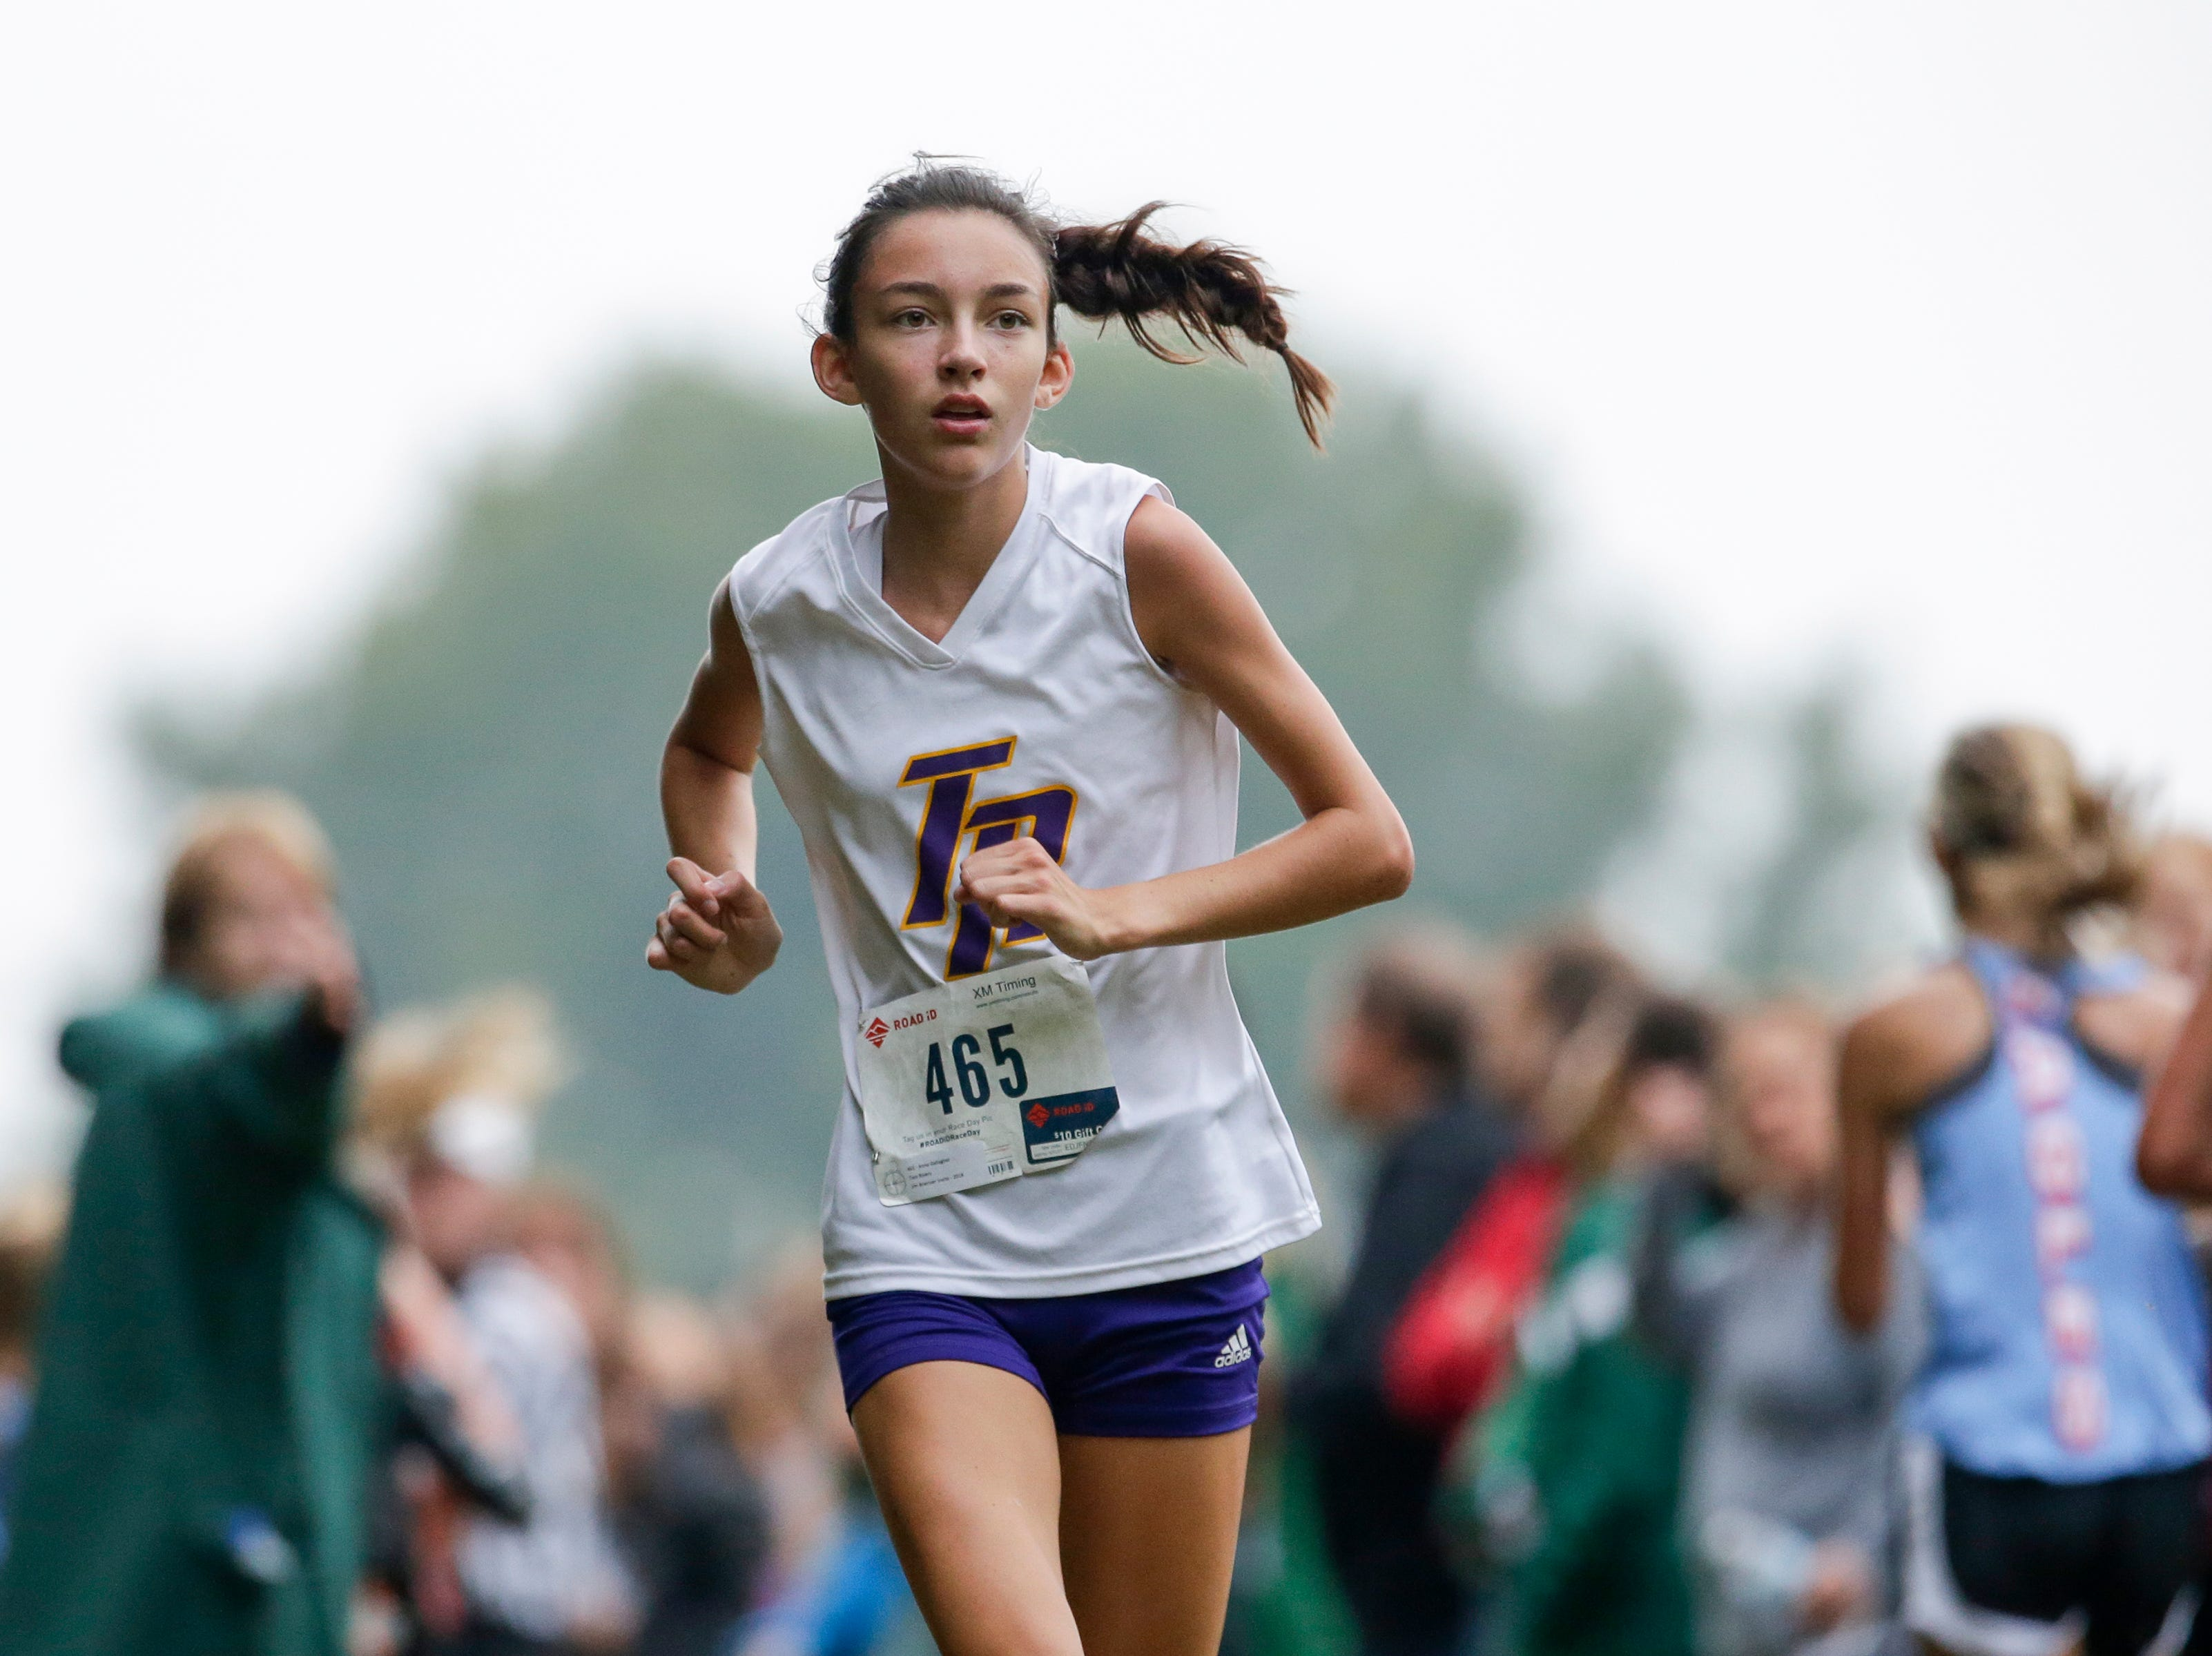 Two Rivers' Anna Gallagher competes in the Jim Bremser cross country invitational at Mishicot High School Thursday, September 20, 2018, in Mishicot, Wis. Gallagher, a freshmen, went on to place in the top 5 at the WIAA Cross Country State Championships. Josh Clark/USA TODAY NETWORK-Wisconsin